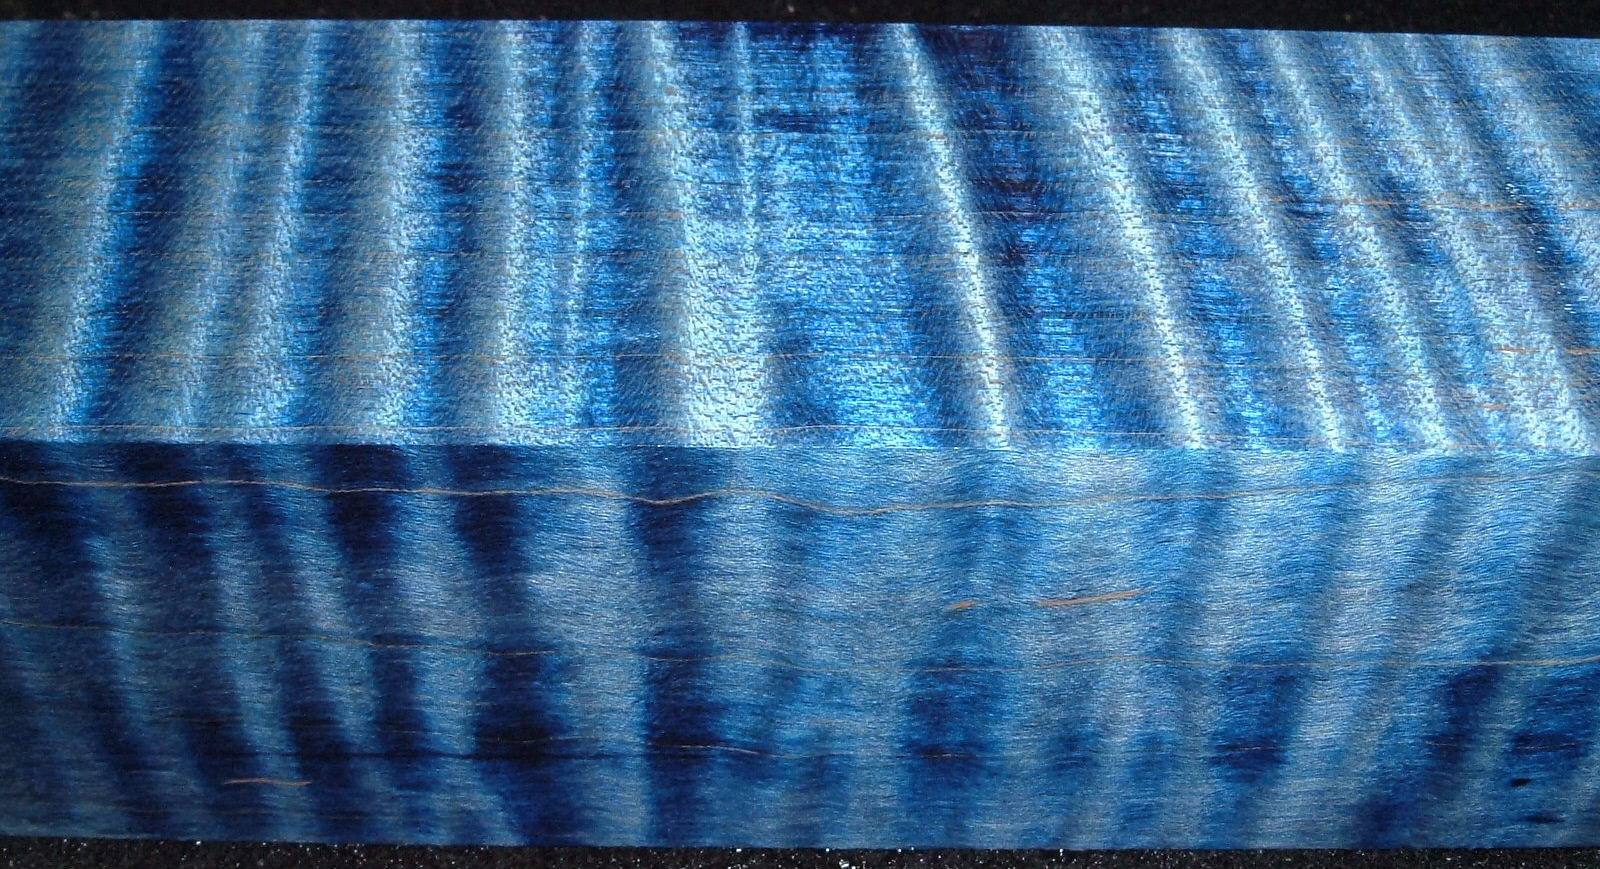 Z308, 1-7/8x1-7/8x6-1/2 ,Blue, Curly Tiger Maple Dyed Stabilized, wood turning block